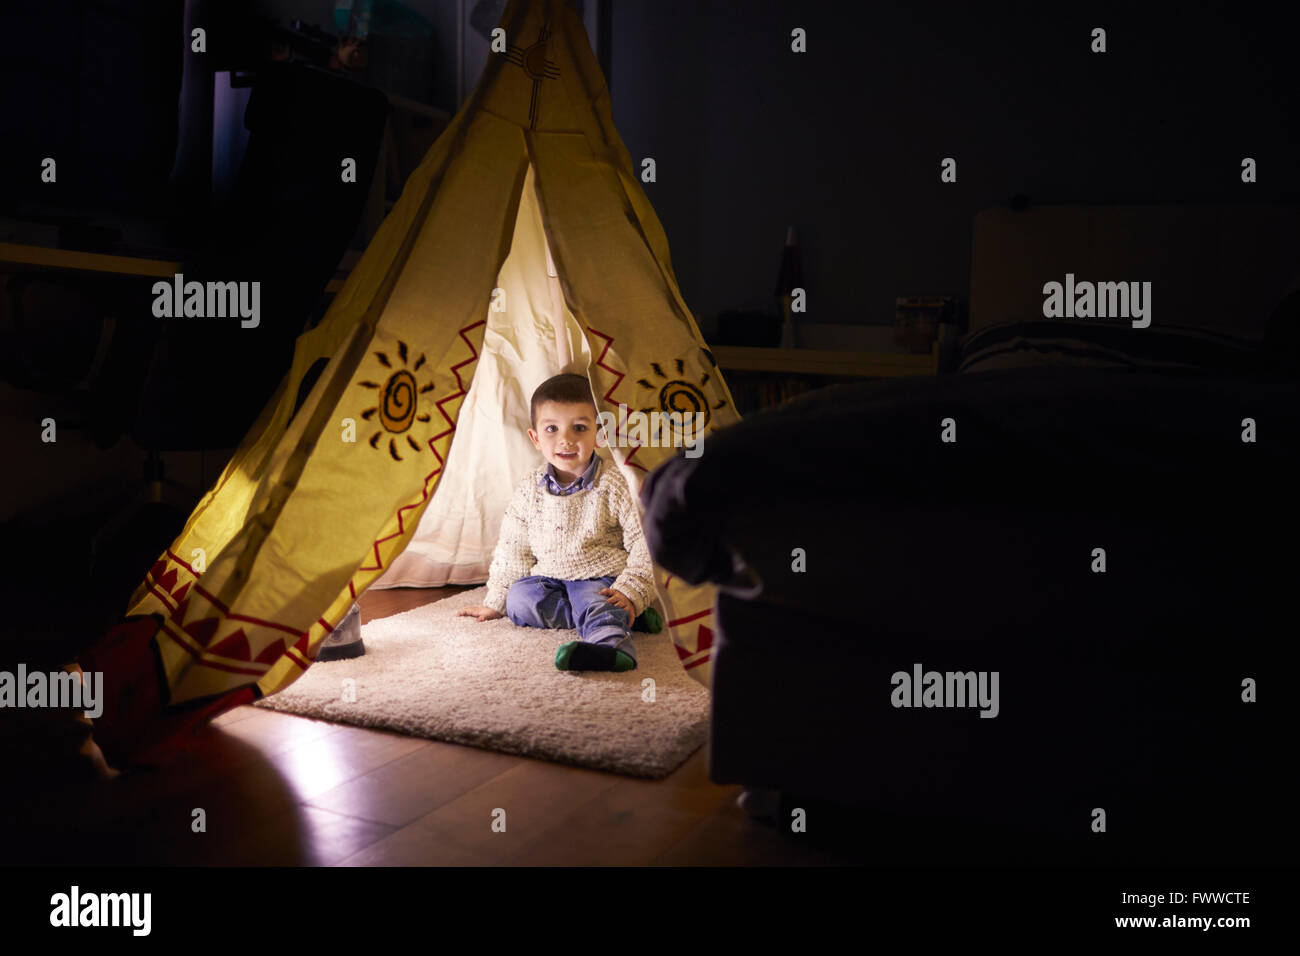 Young Boy Playing Inside Tent Set Up Indoors - Stock Image